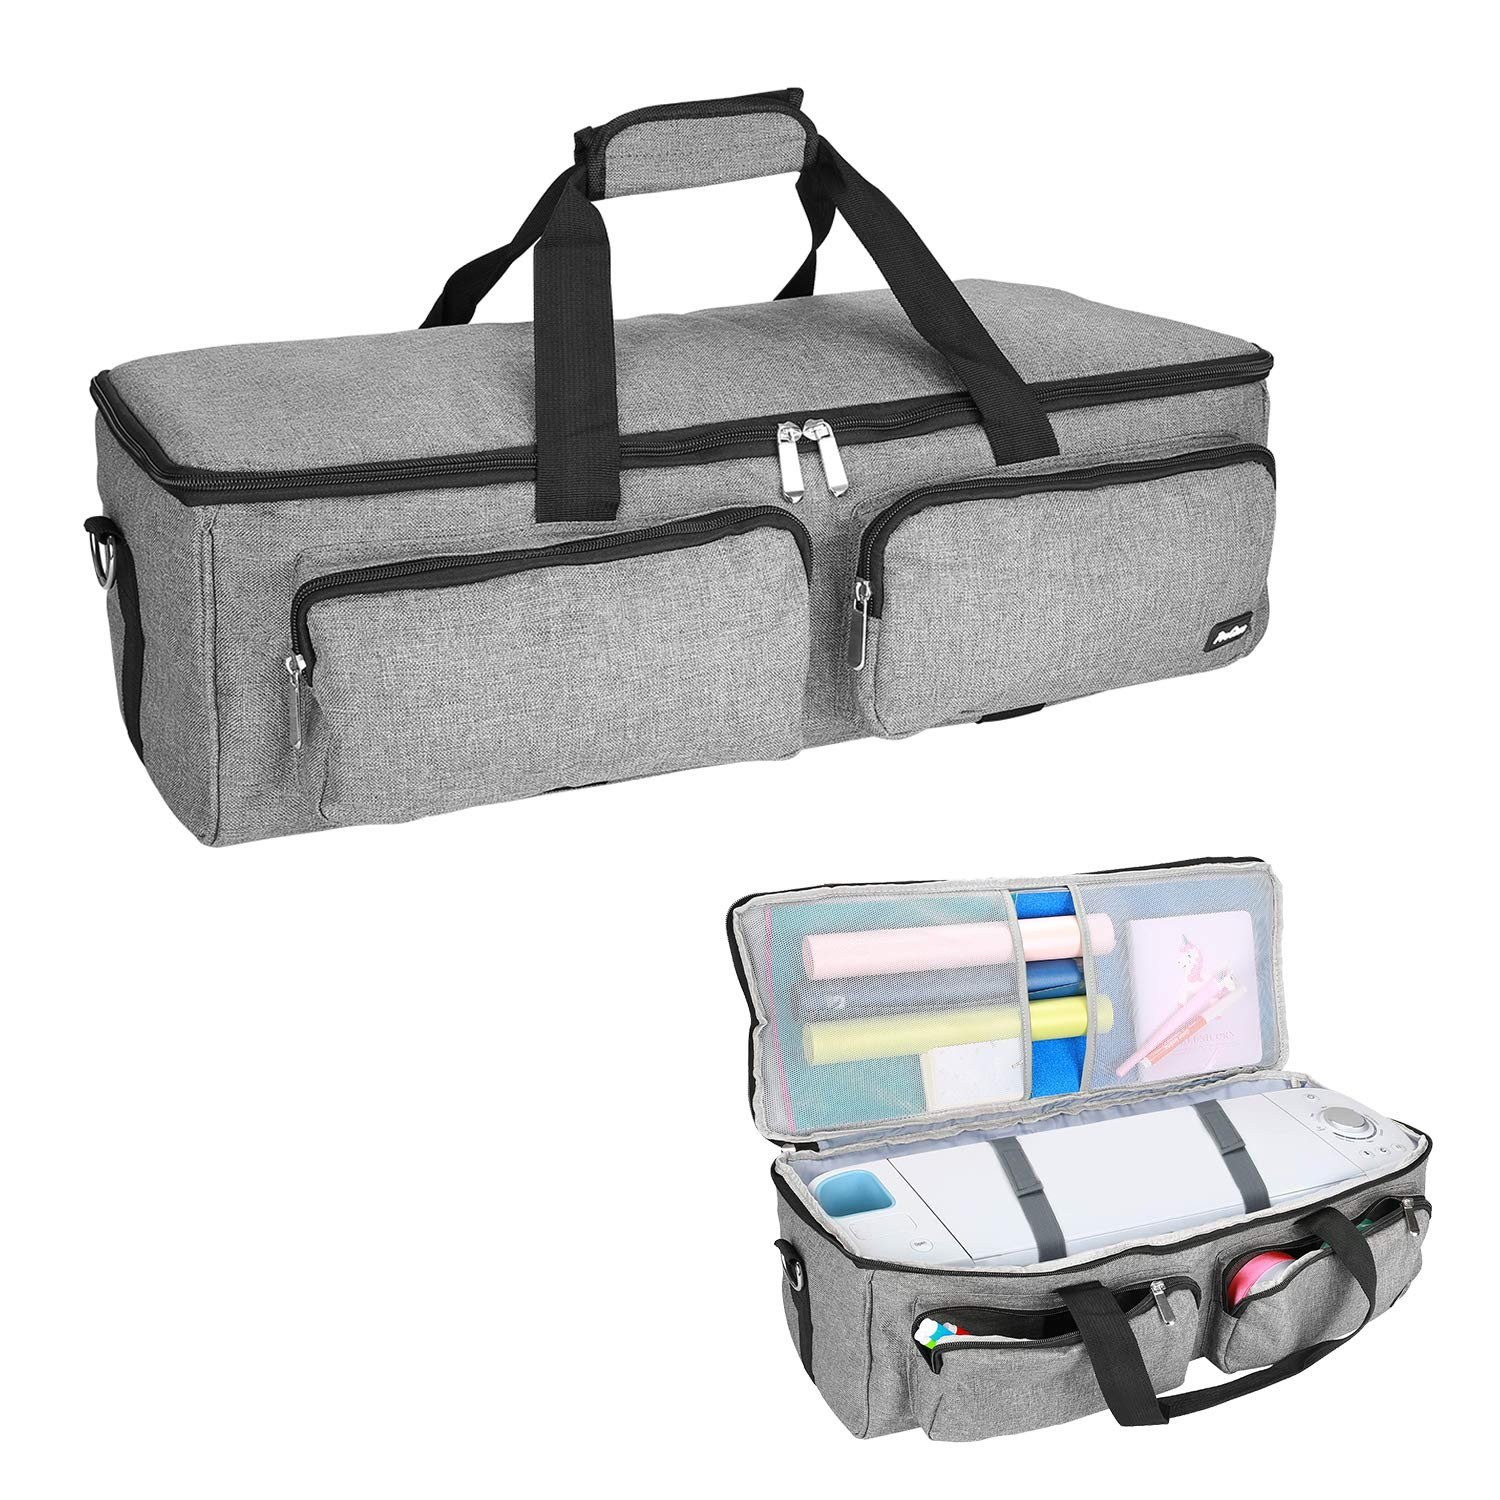 Carrying Case for Cricut Explore Air Cricut Maker | ProCase